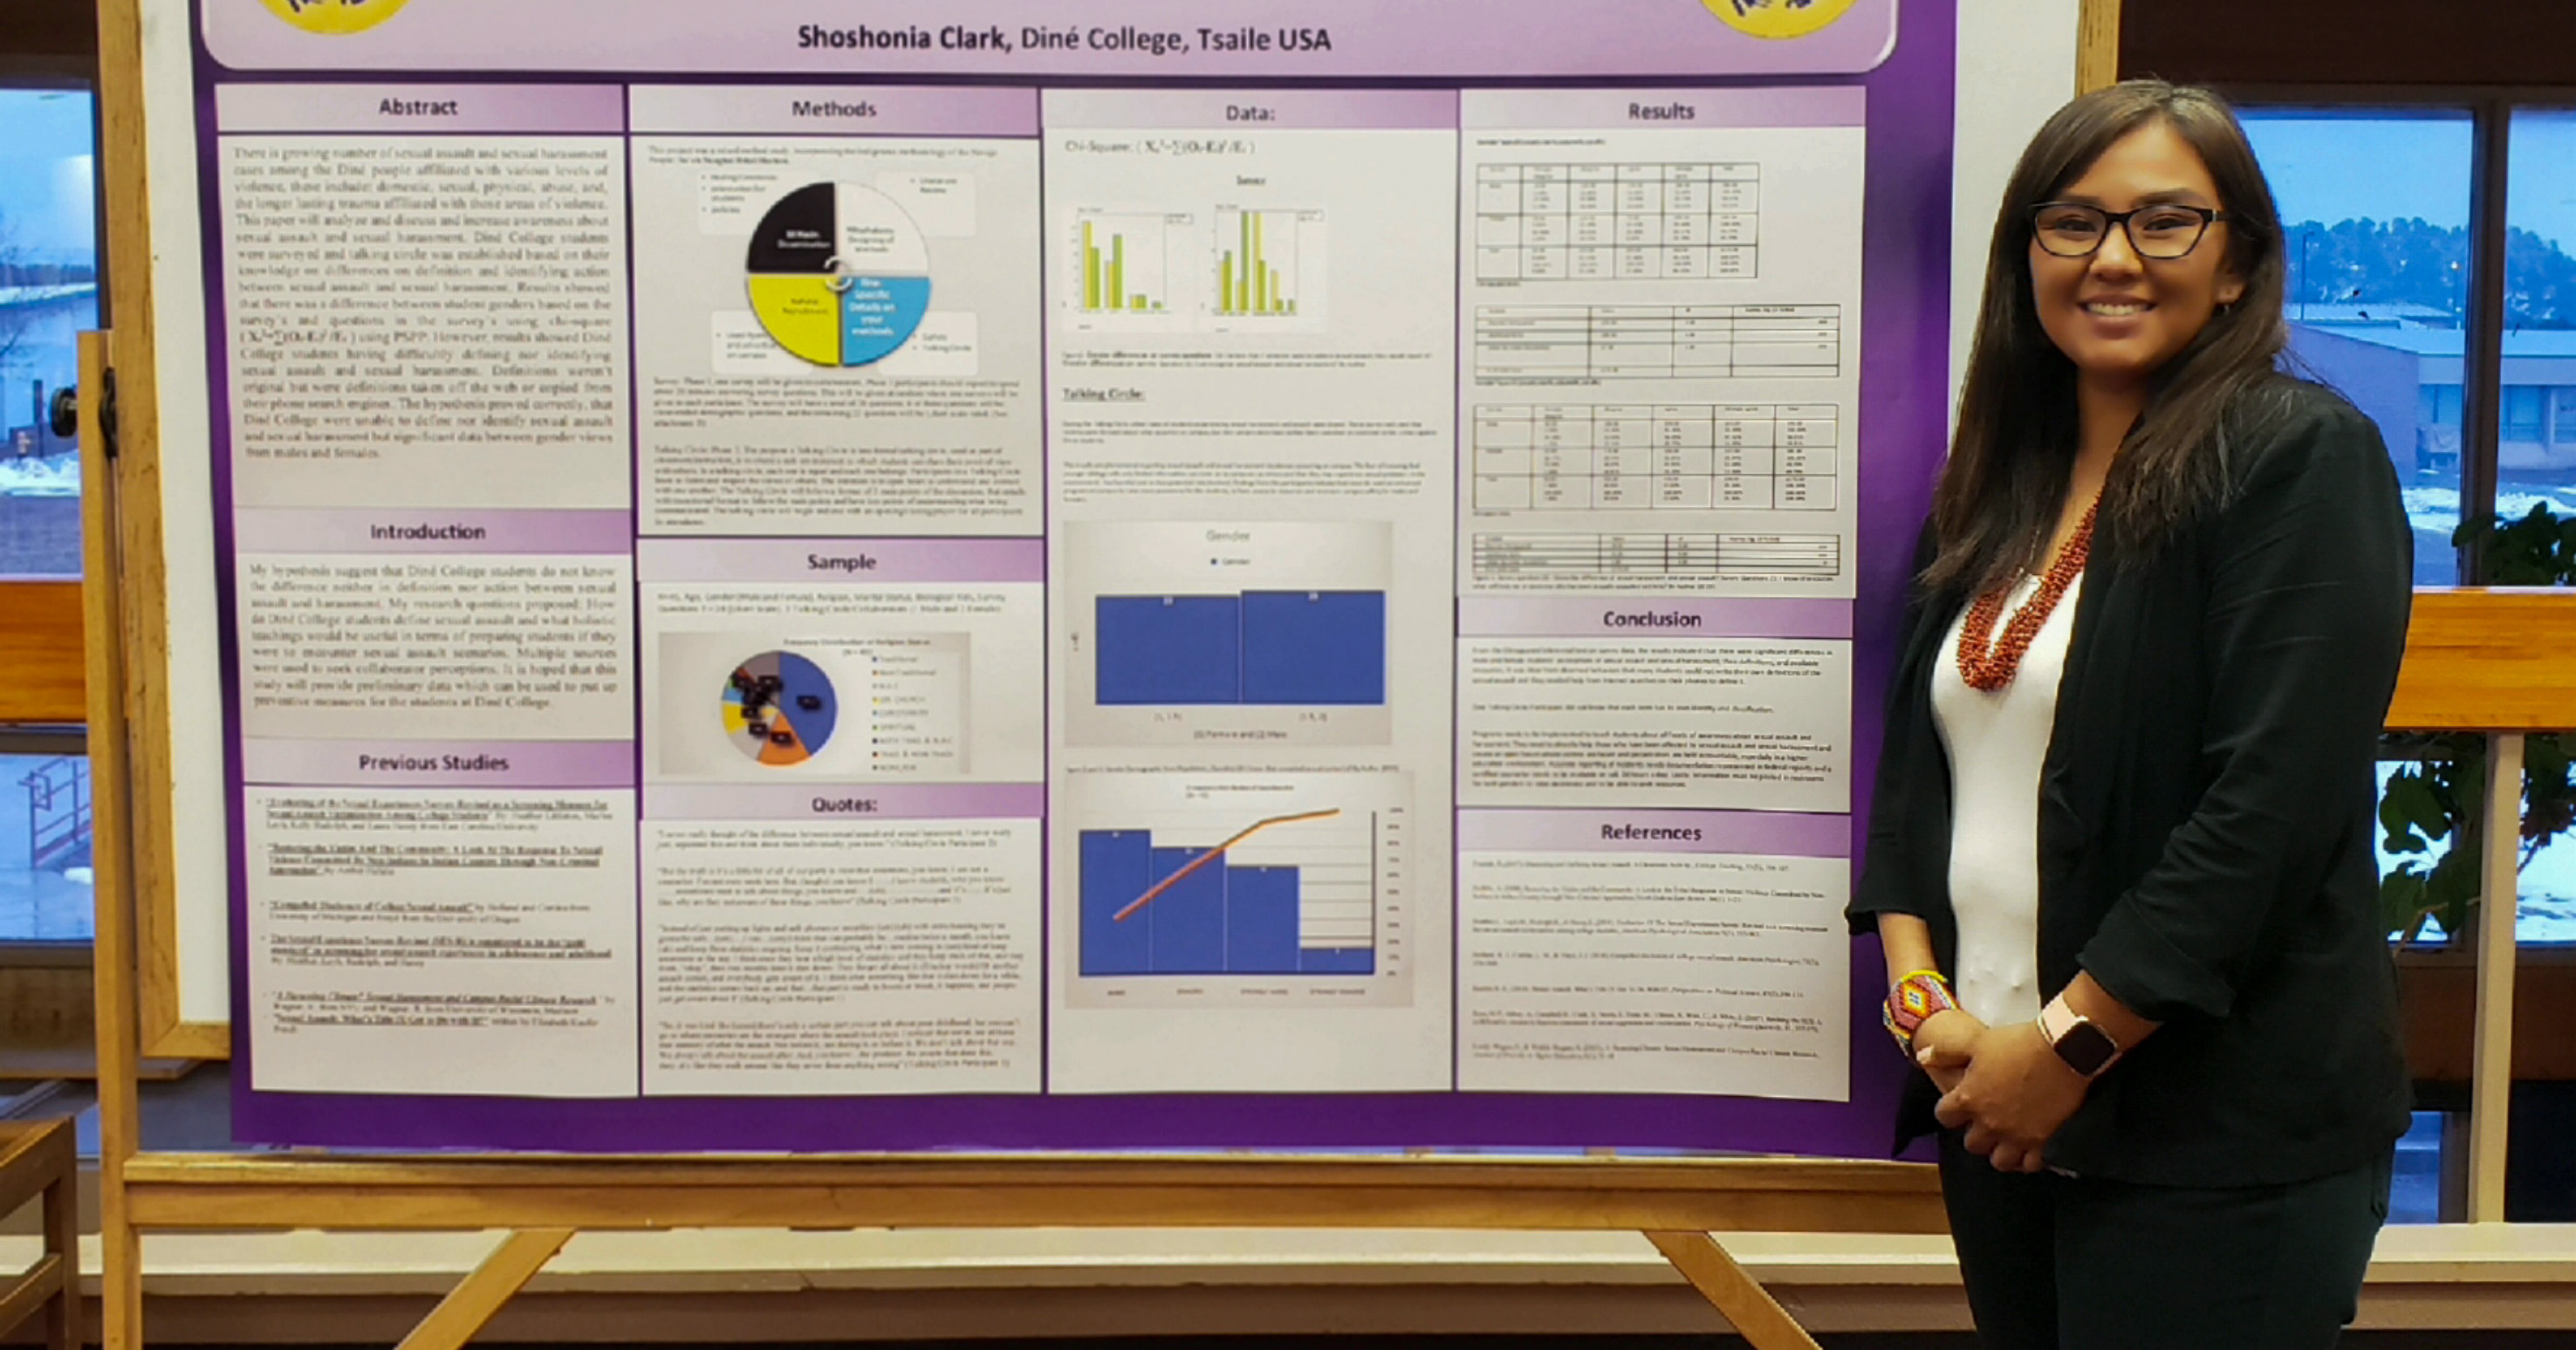 woman standing in front of a presentation board